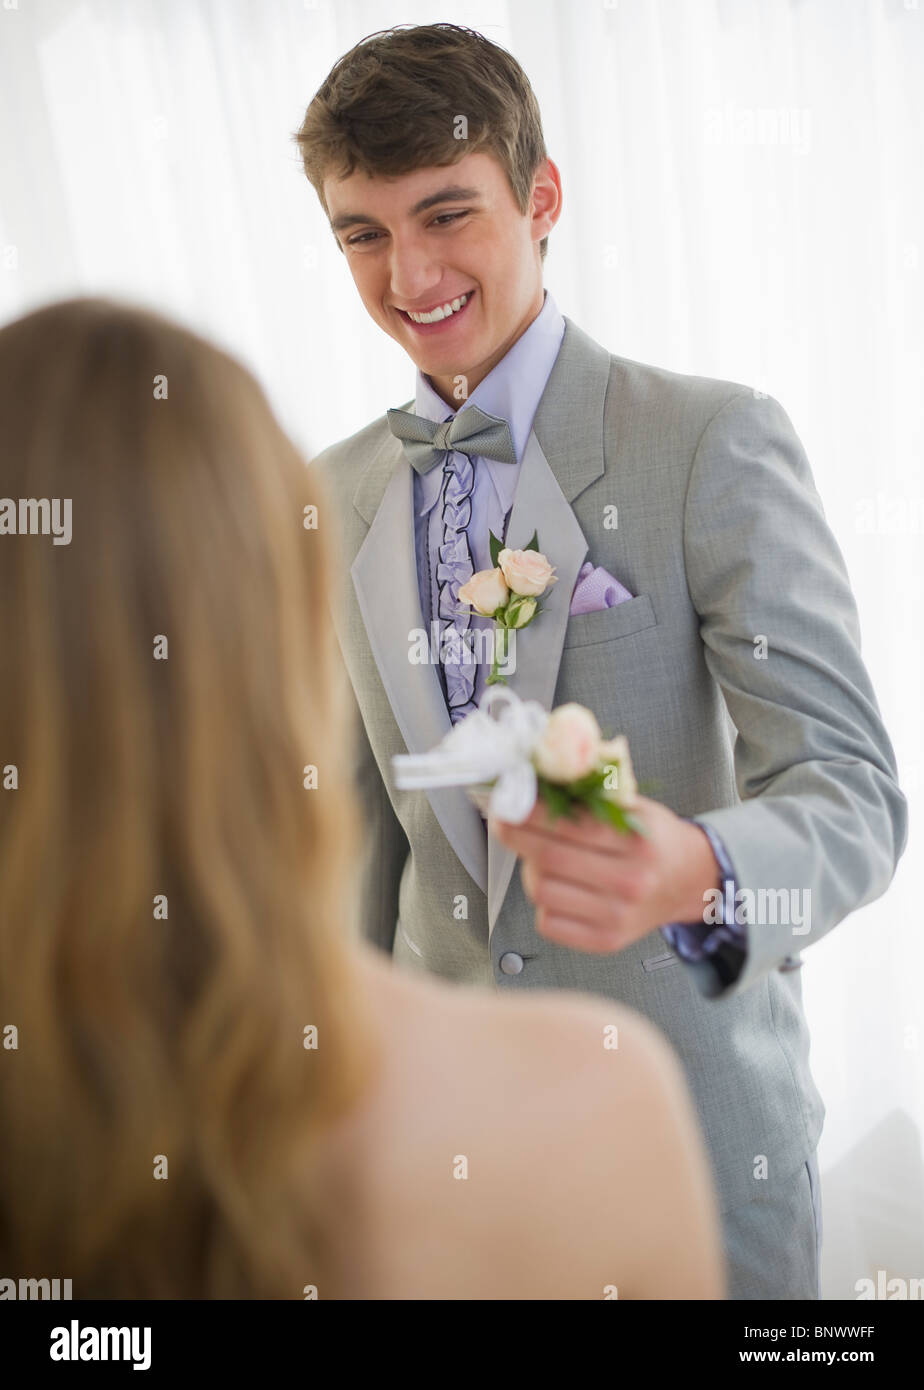 Man giving corsage to woman - Stock Image